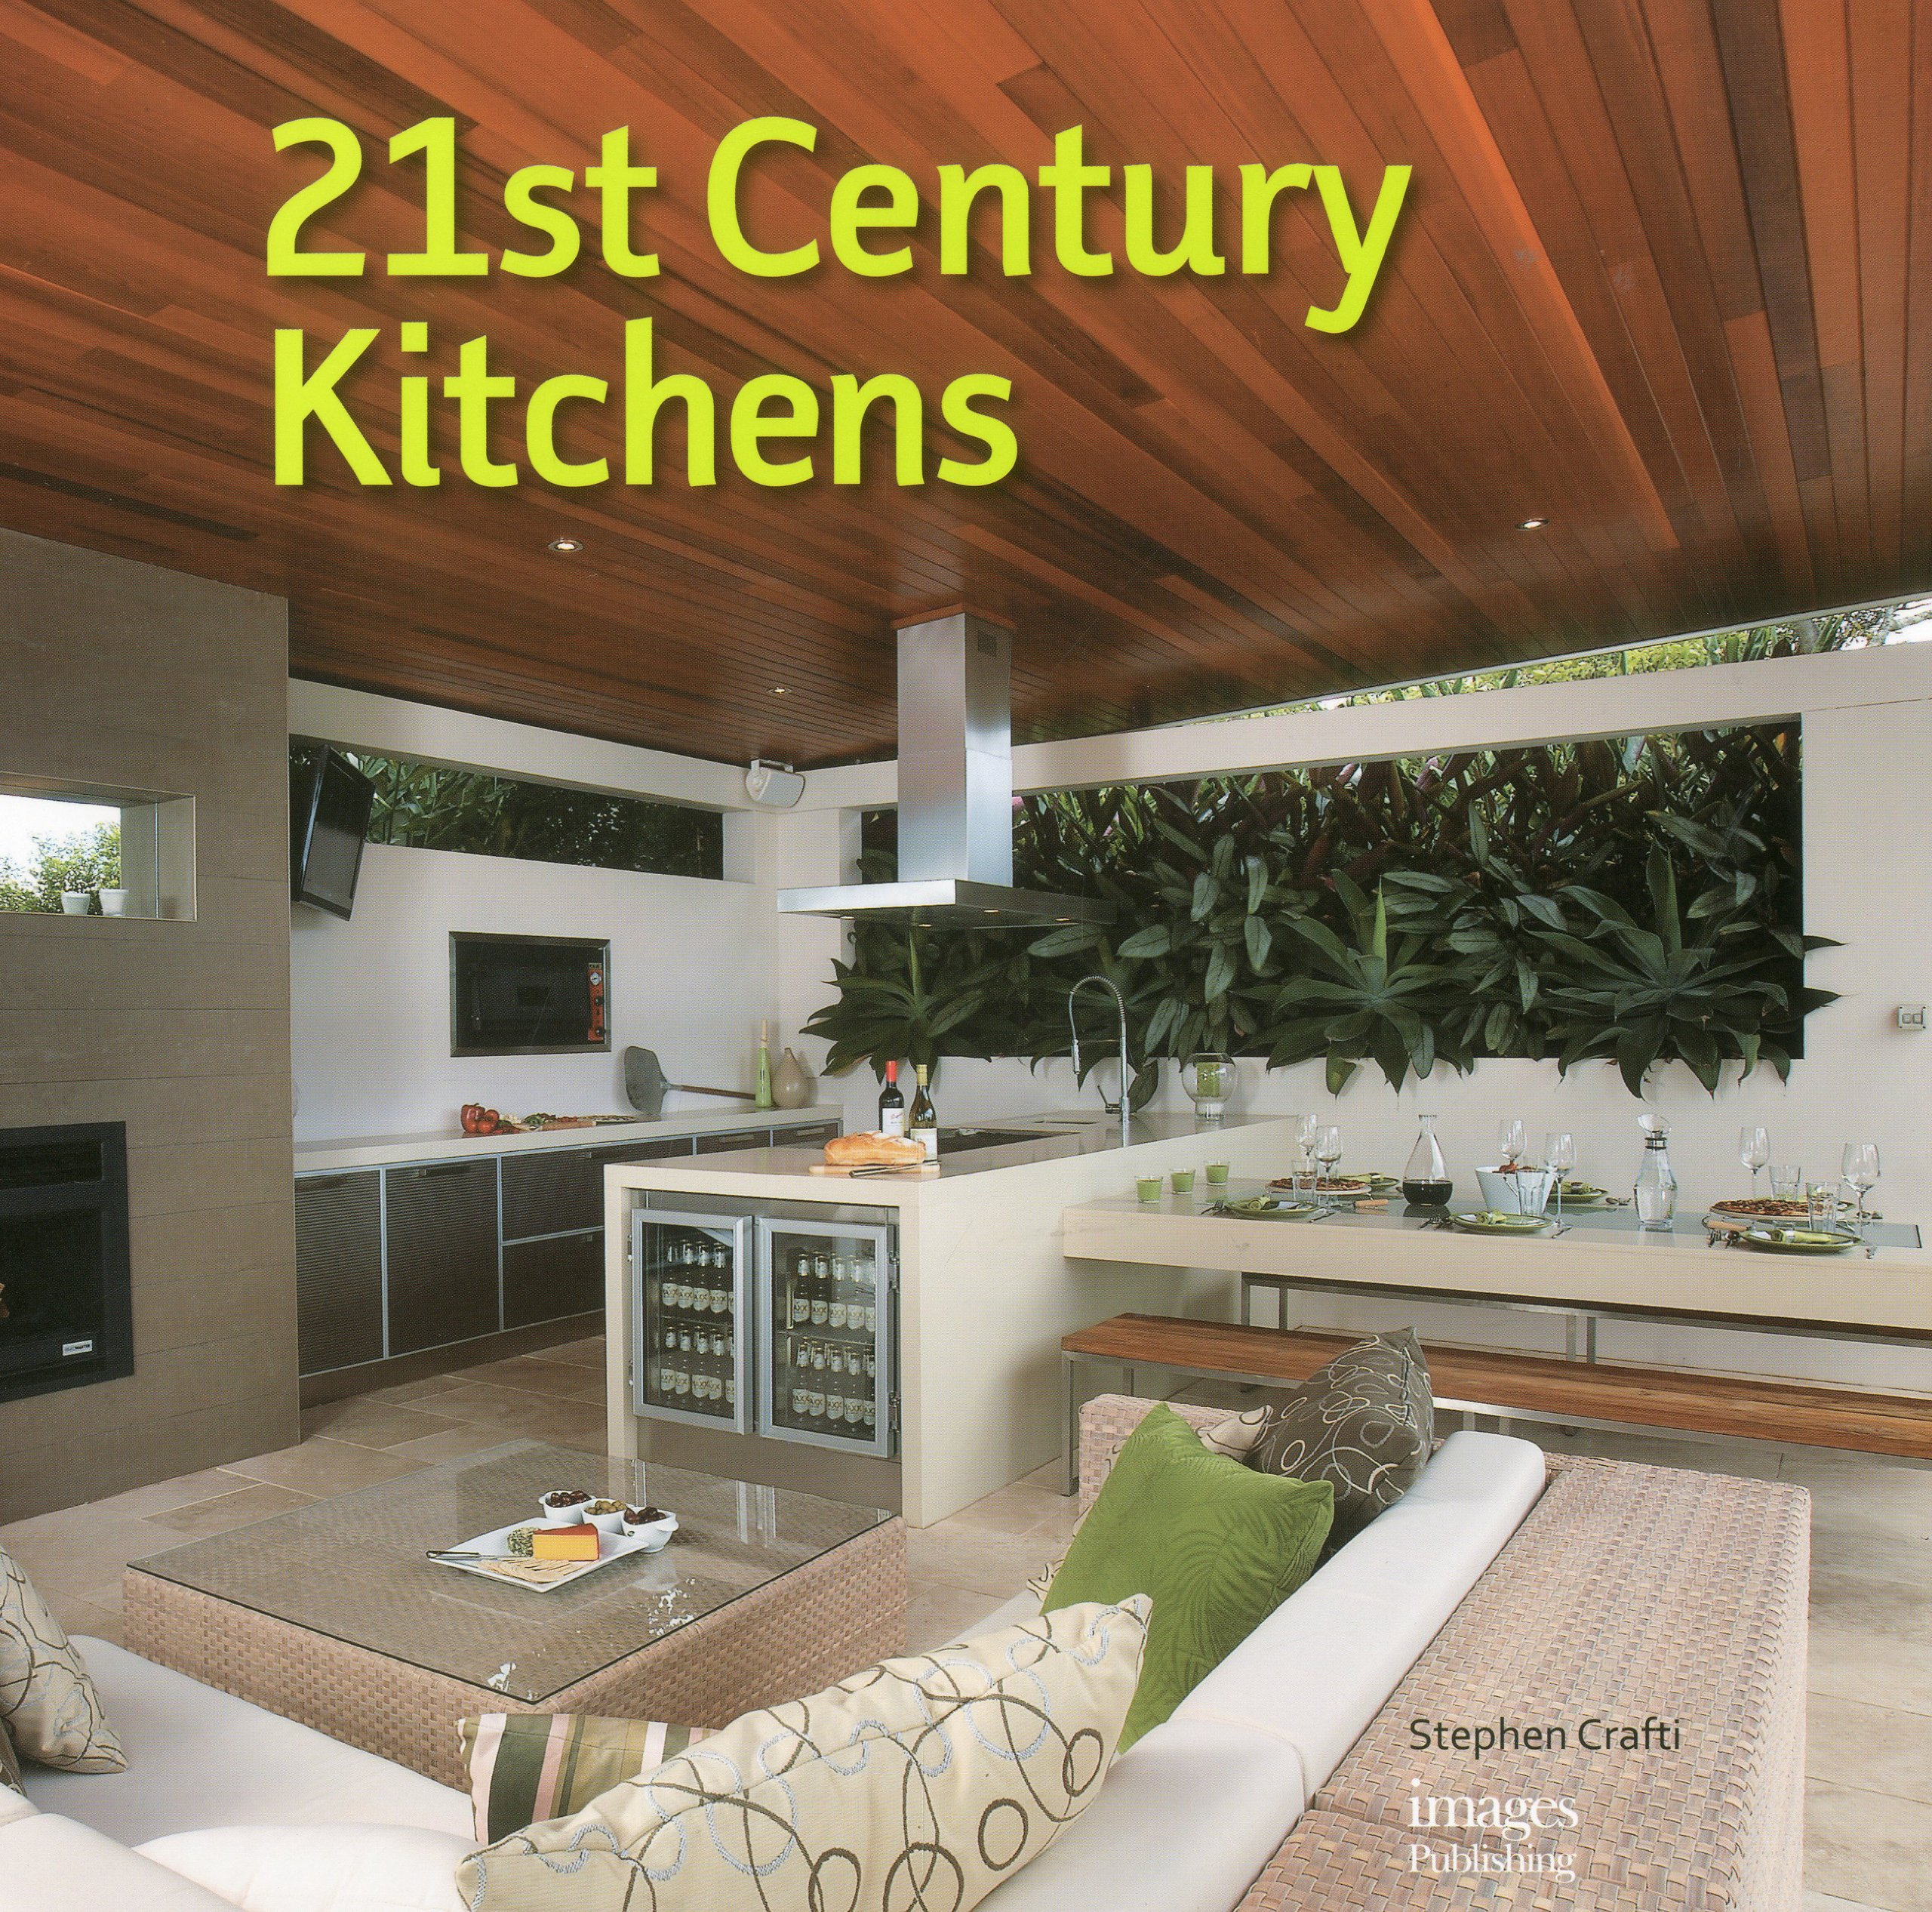 21st century kitchens and cabinets 21st century kitchens and cabinets cabinets matttroy 10120